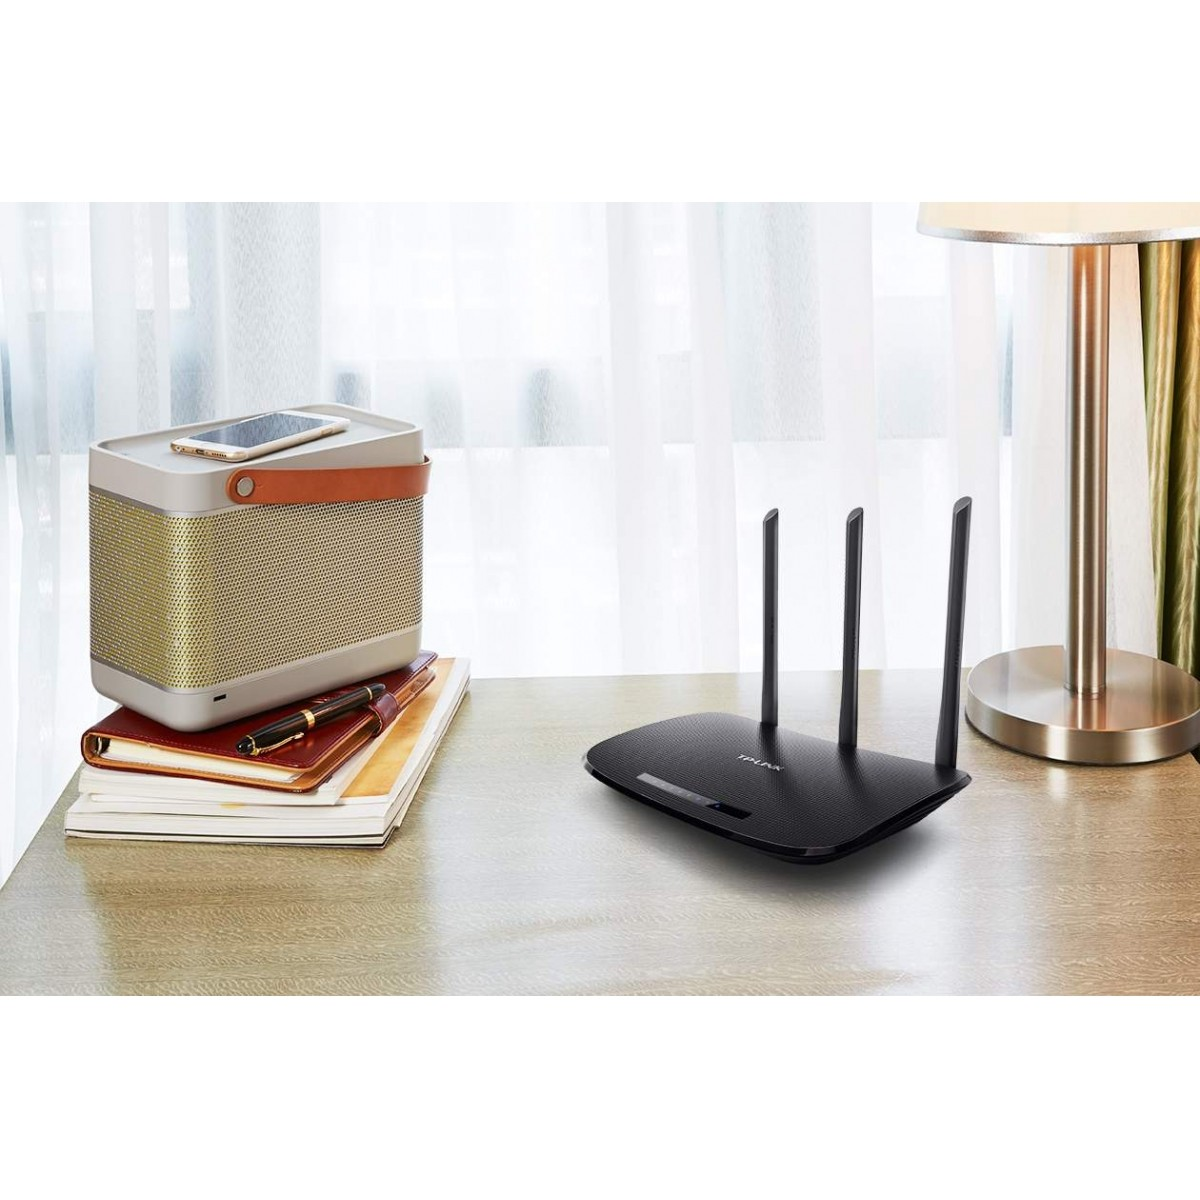 Roteador Wireless N 450Mbps Tl-WR940N TP-Link 25108